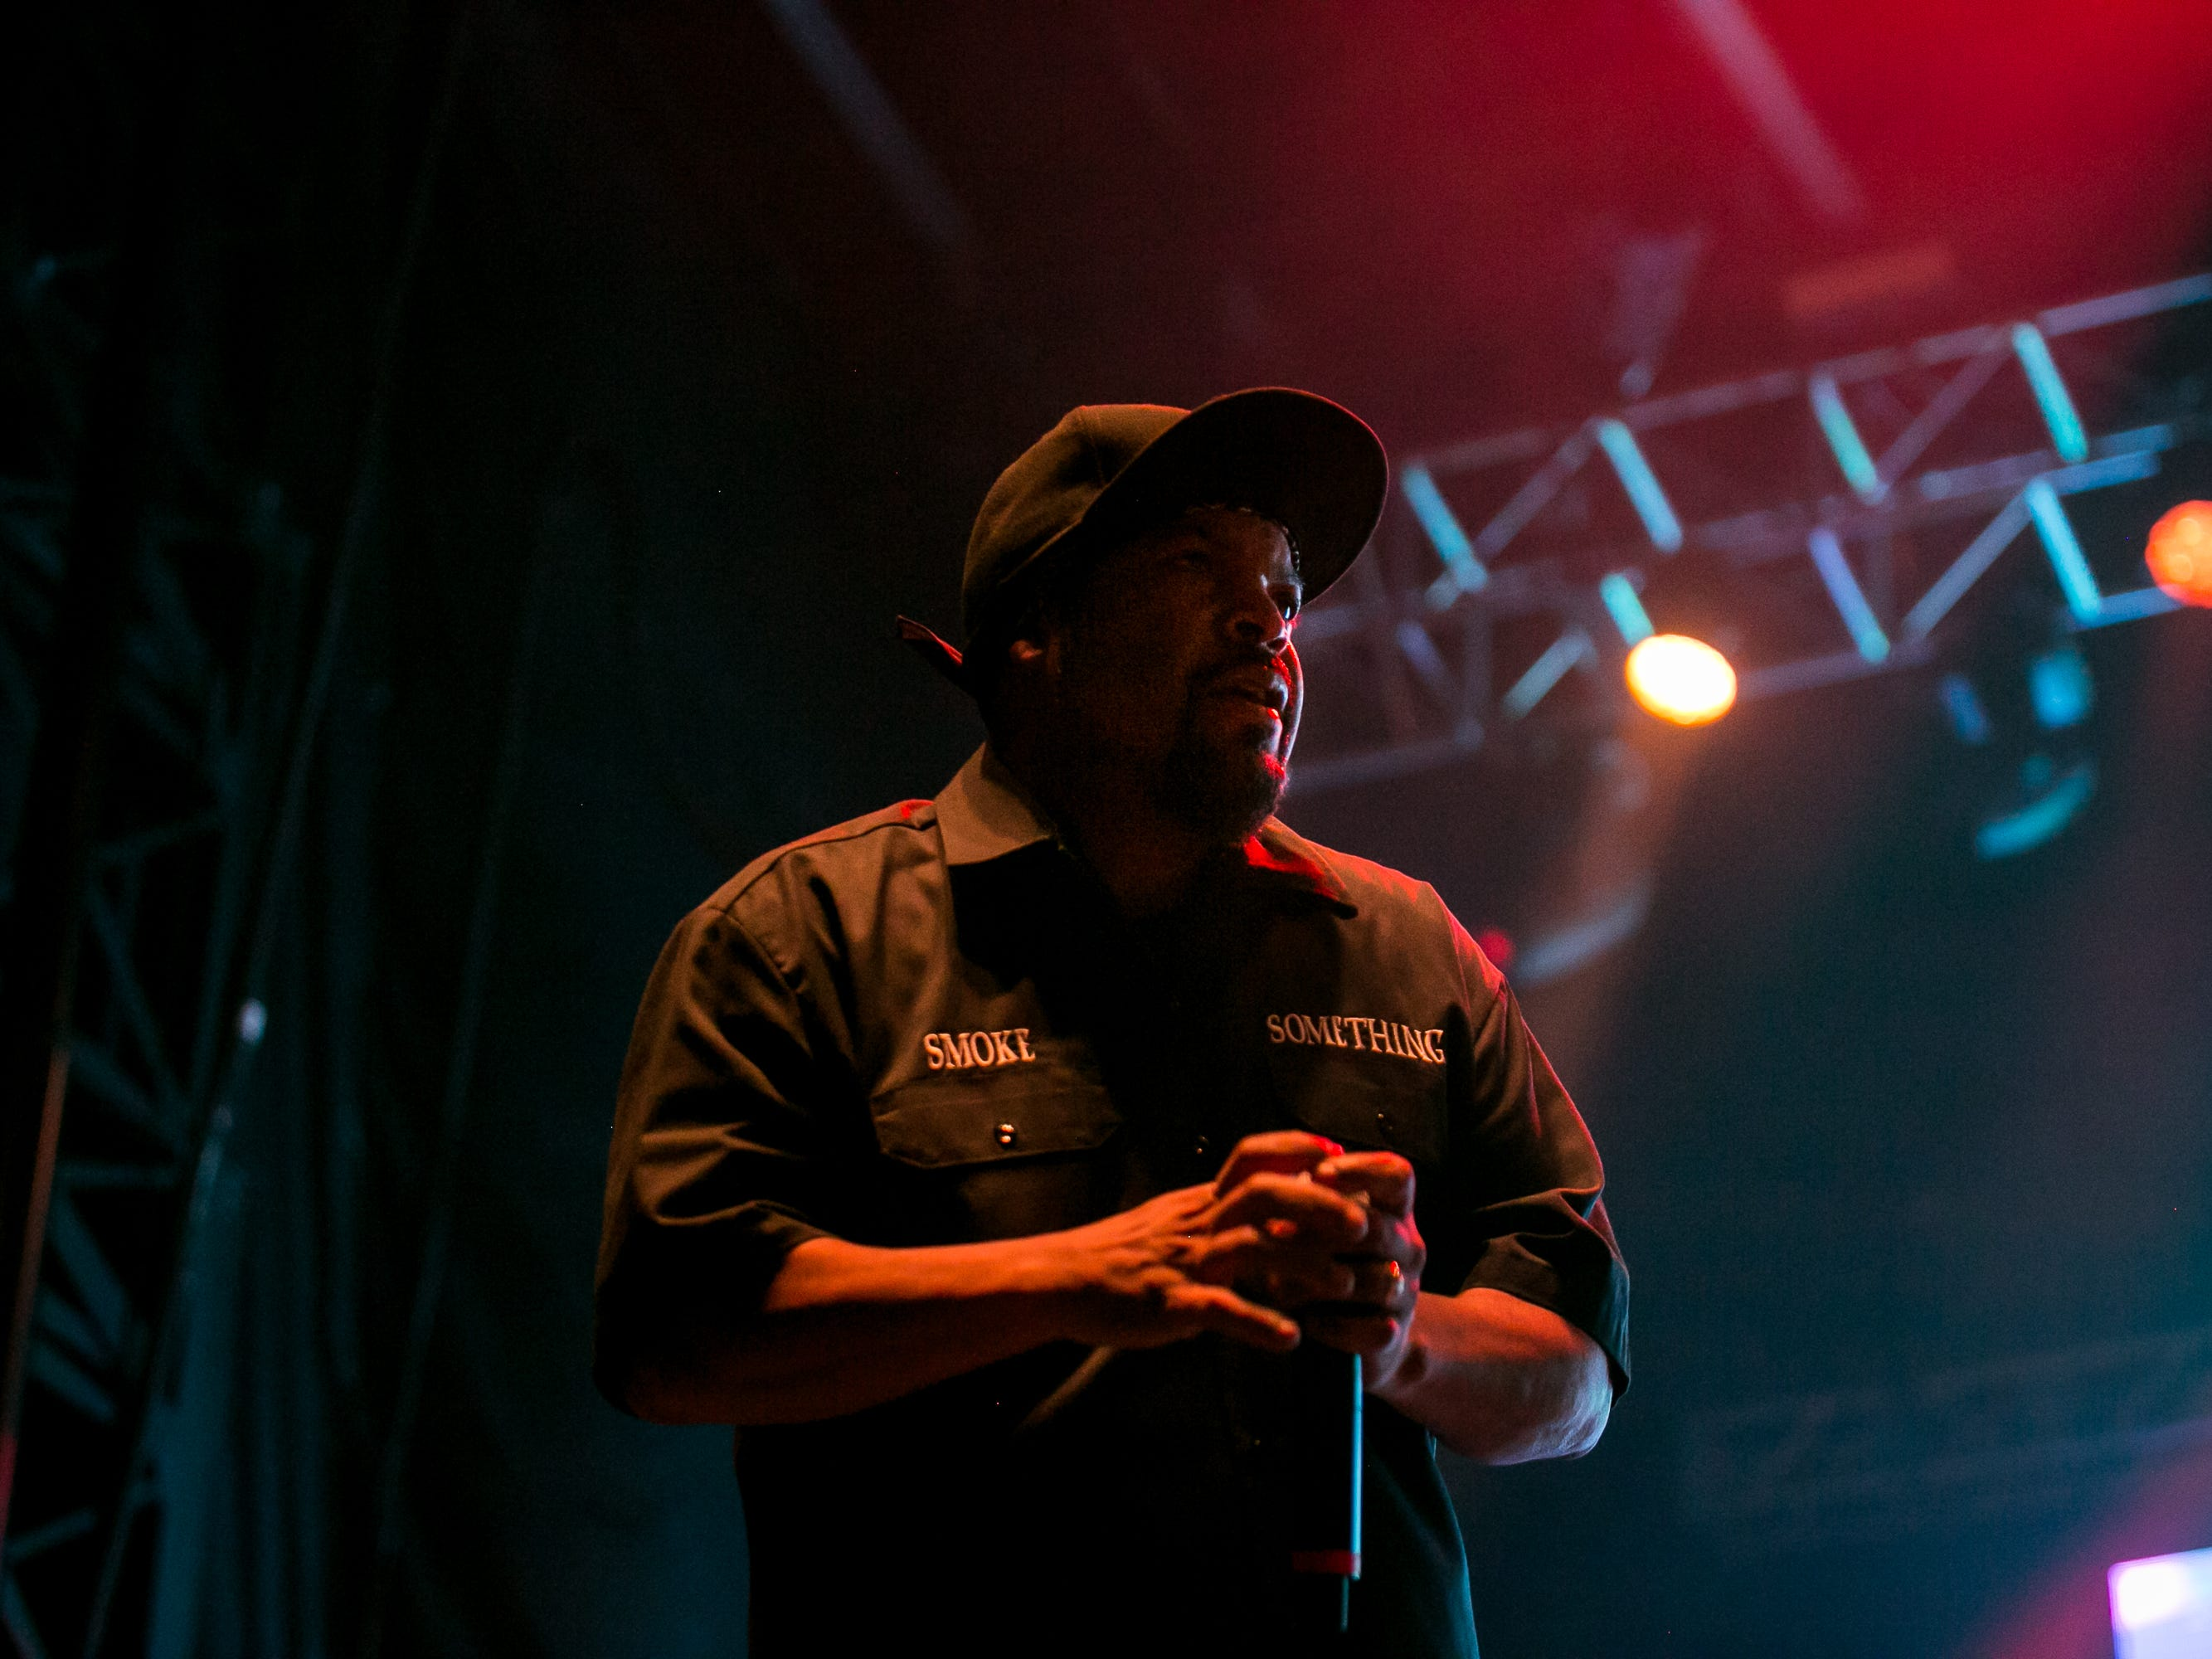 Ice Cube performs at the Pot of Gold Music Festival at Steele Indian School Park in Phoenix on Friday, March 15, 2019.